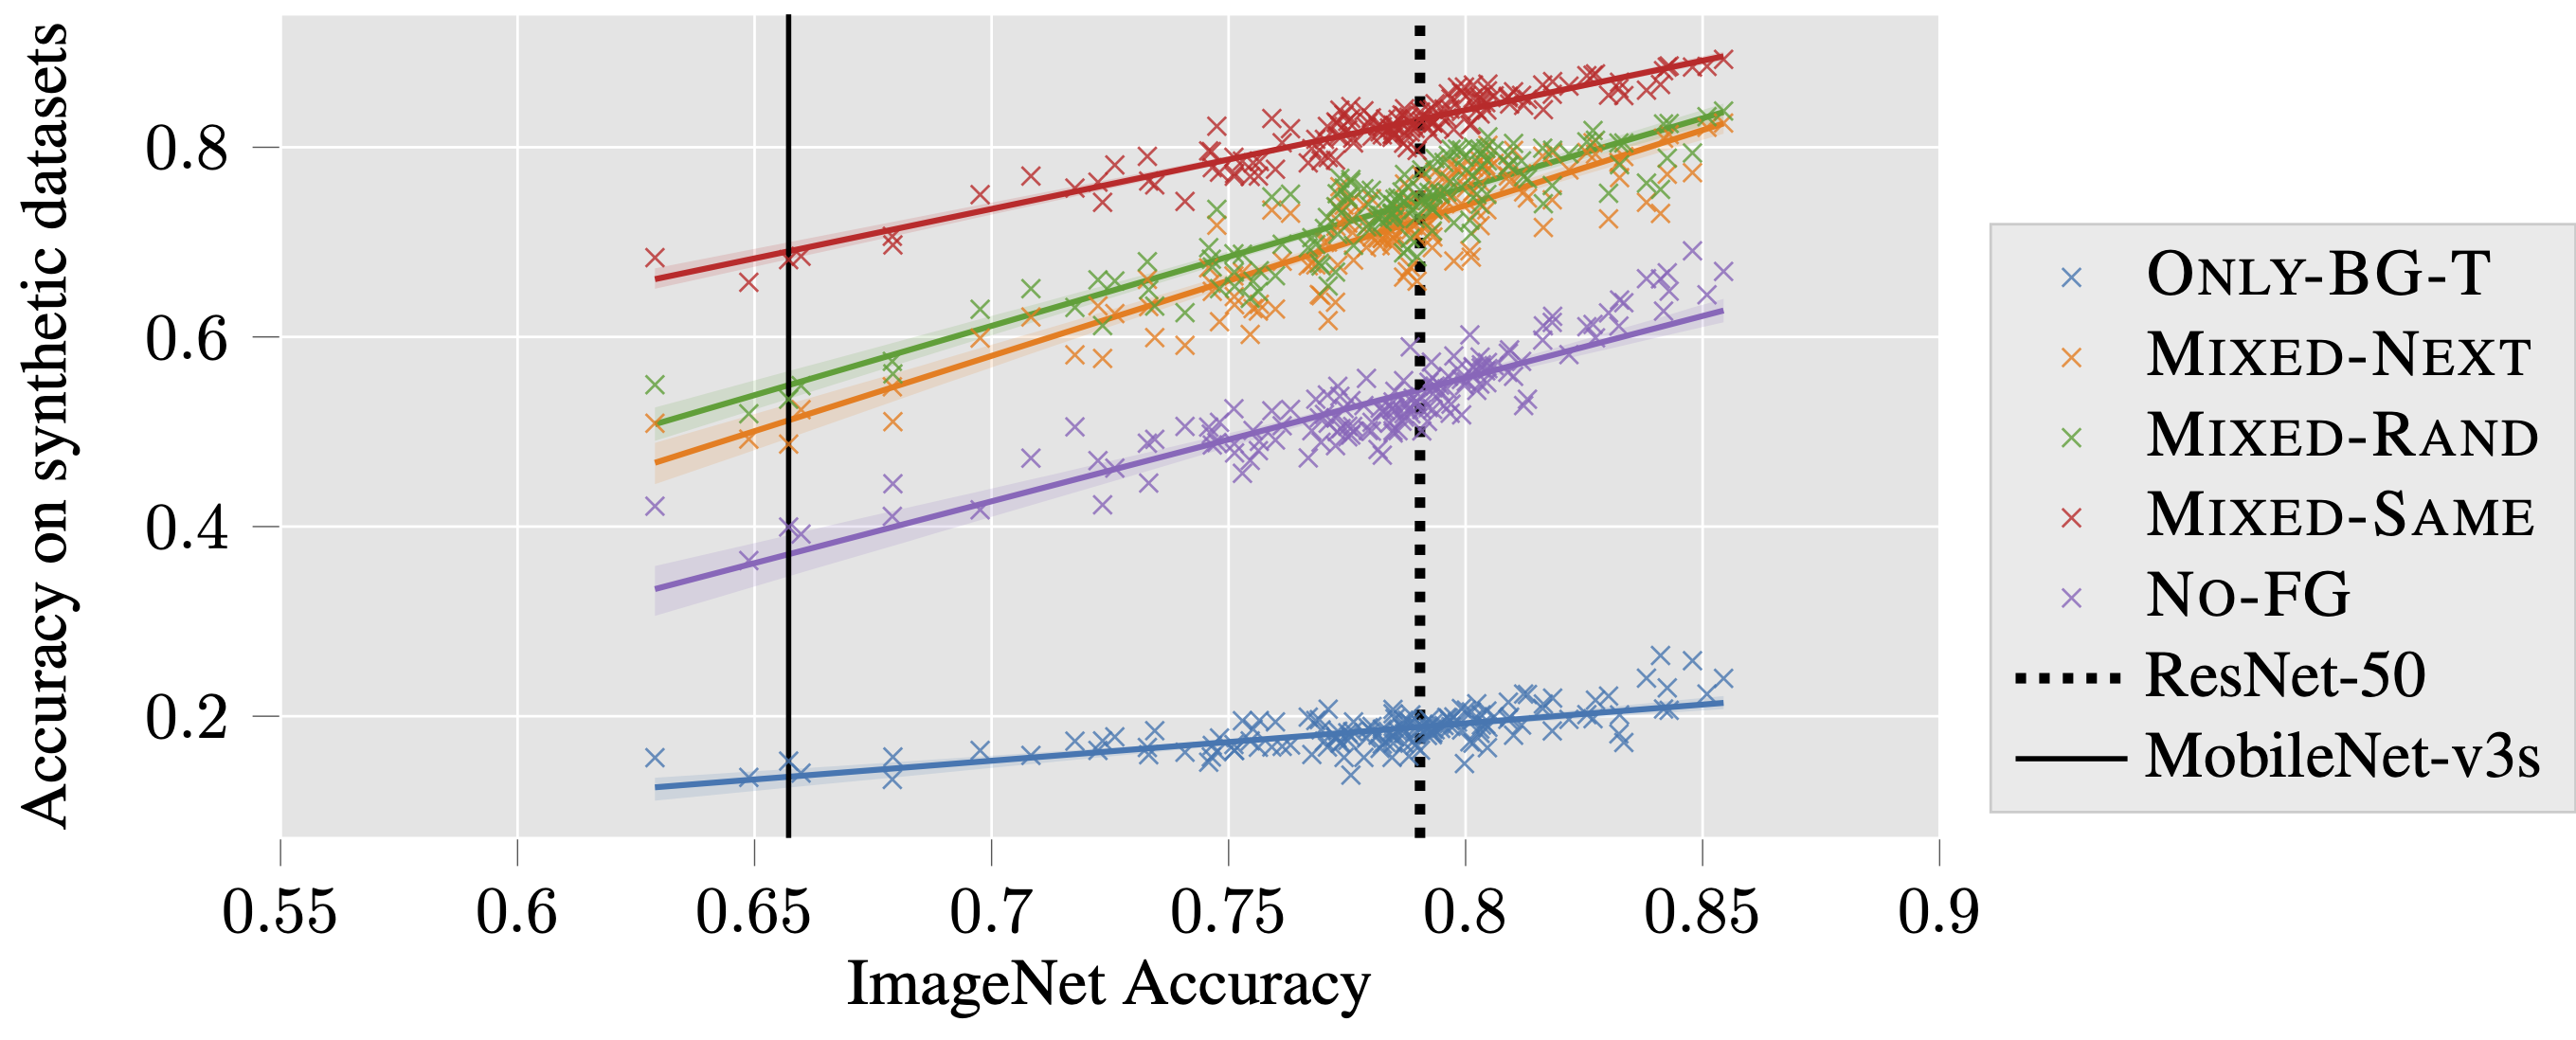 ImageNet accuracy plotted against accuracy on synthetic datasets